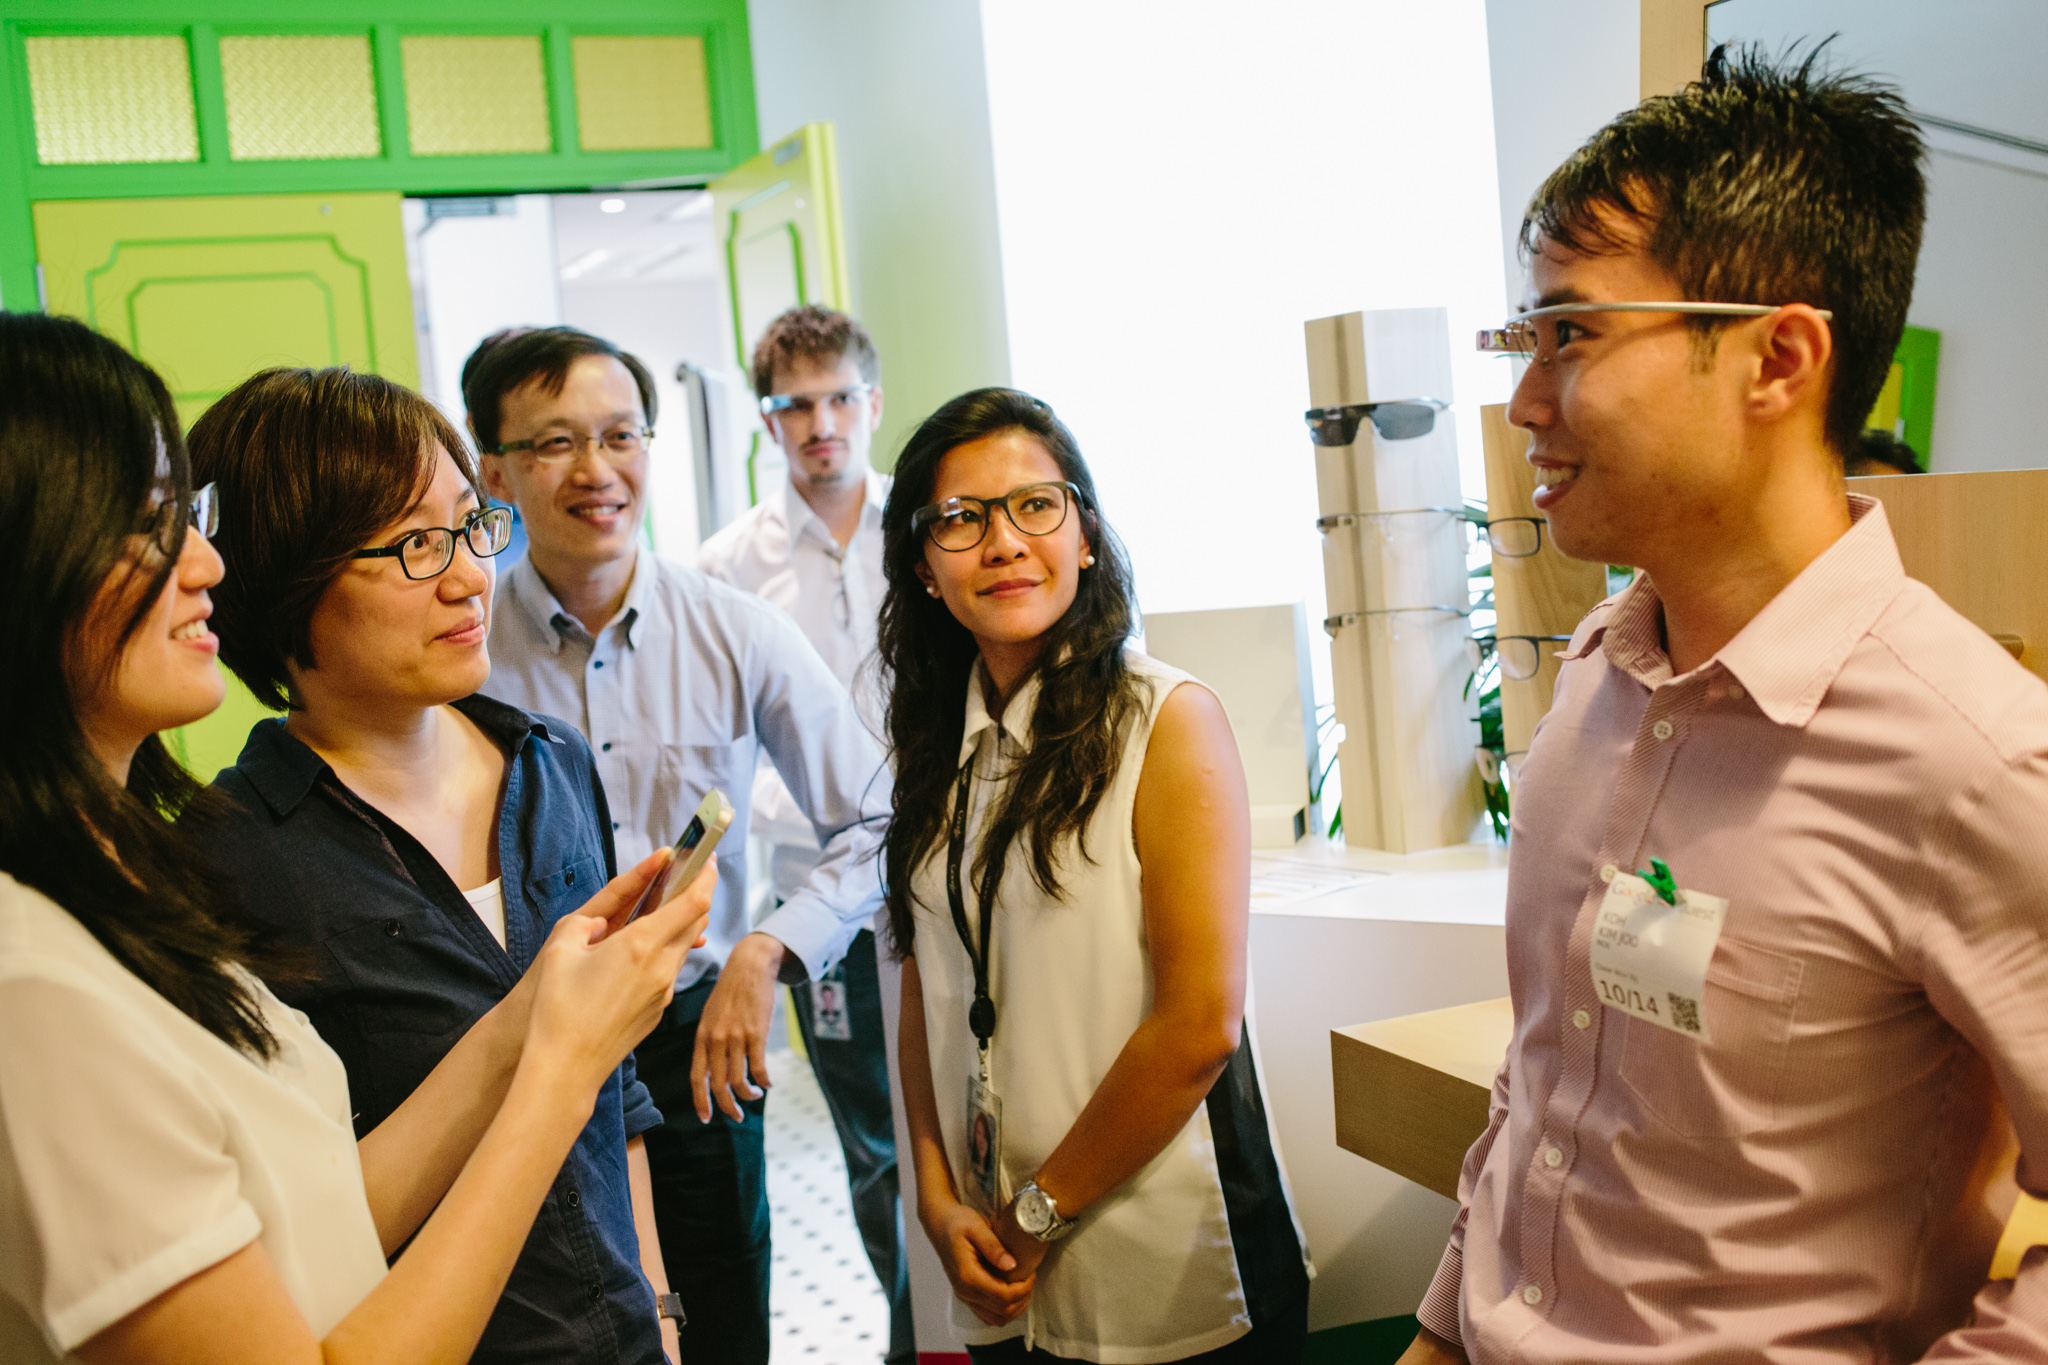 In October 2014, attendees at a event hosted by Google Singapore demoed Glass.